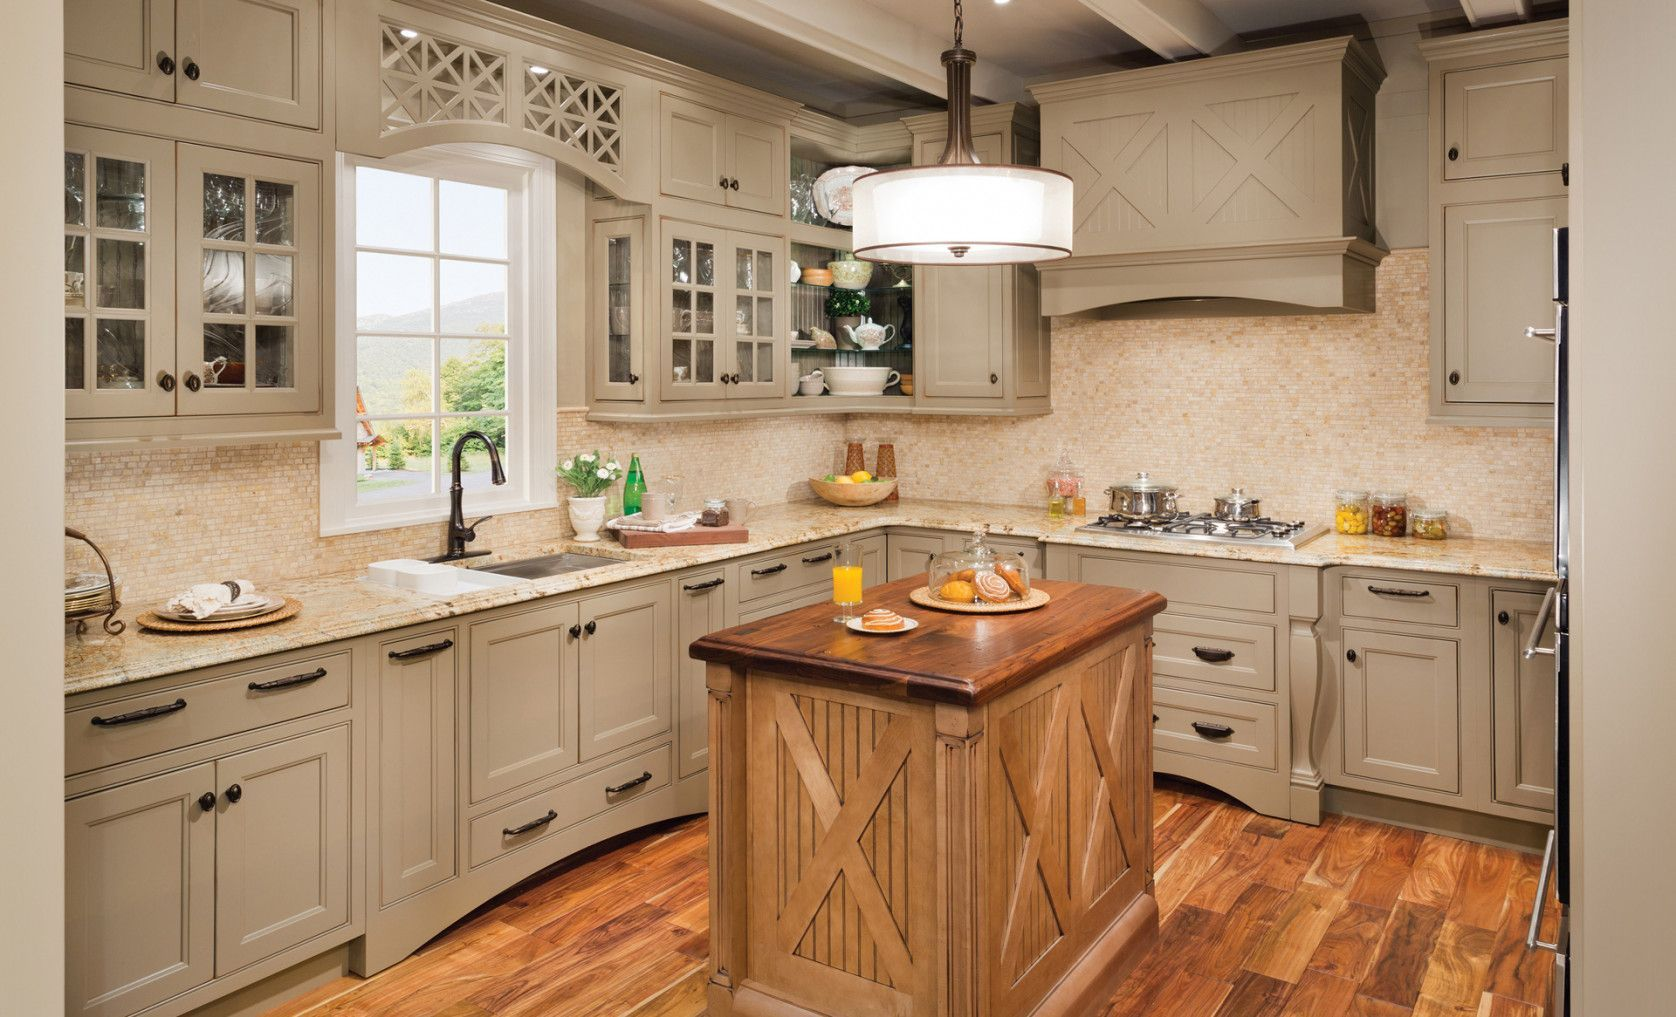 99+ 6 Square Cabinets Reviews   Small Kitchen Island Ideas With Seating  Check More At